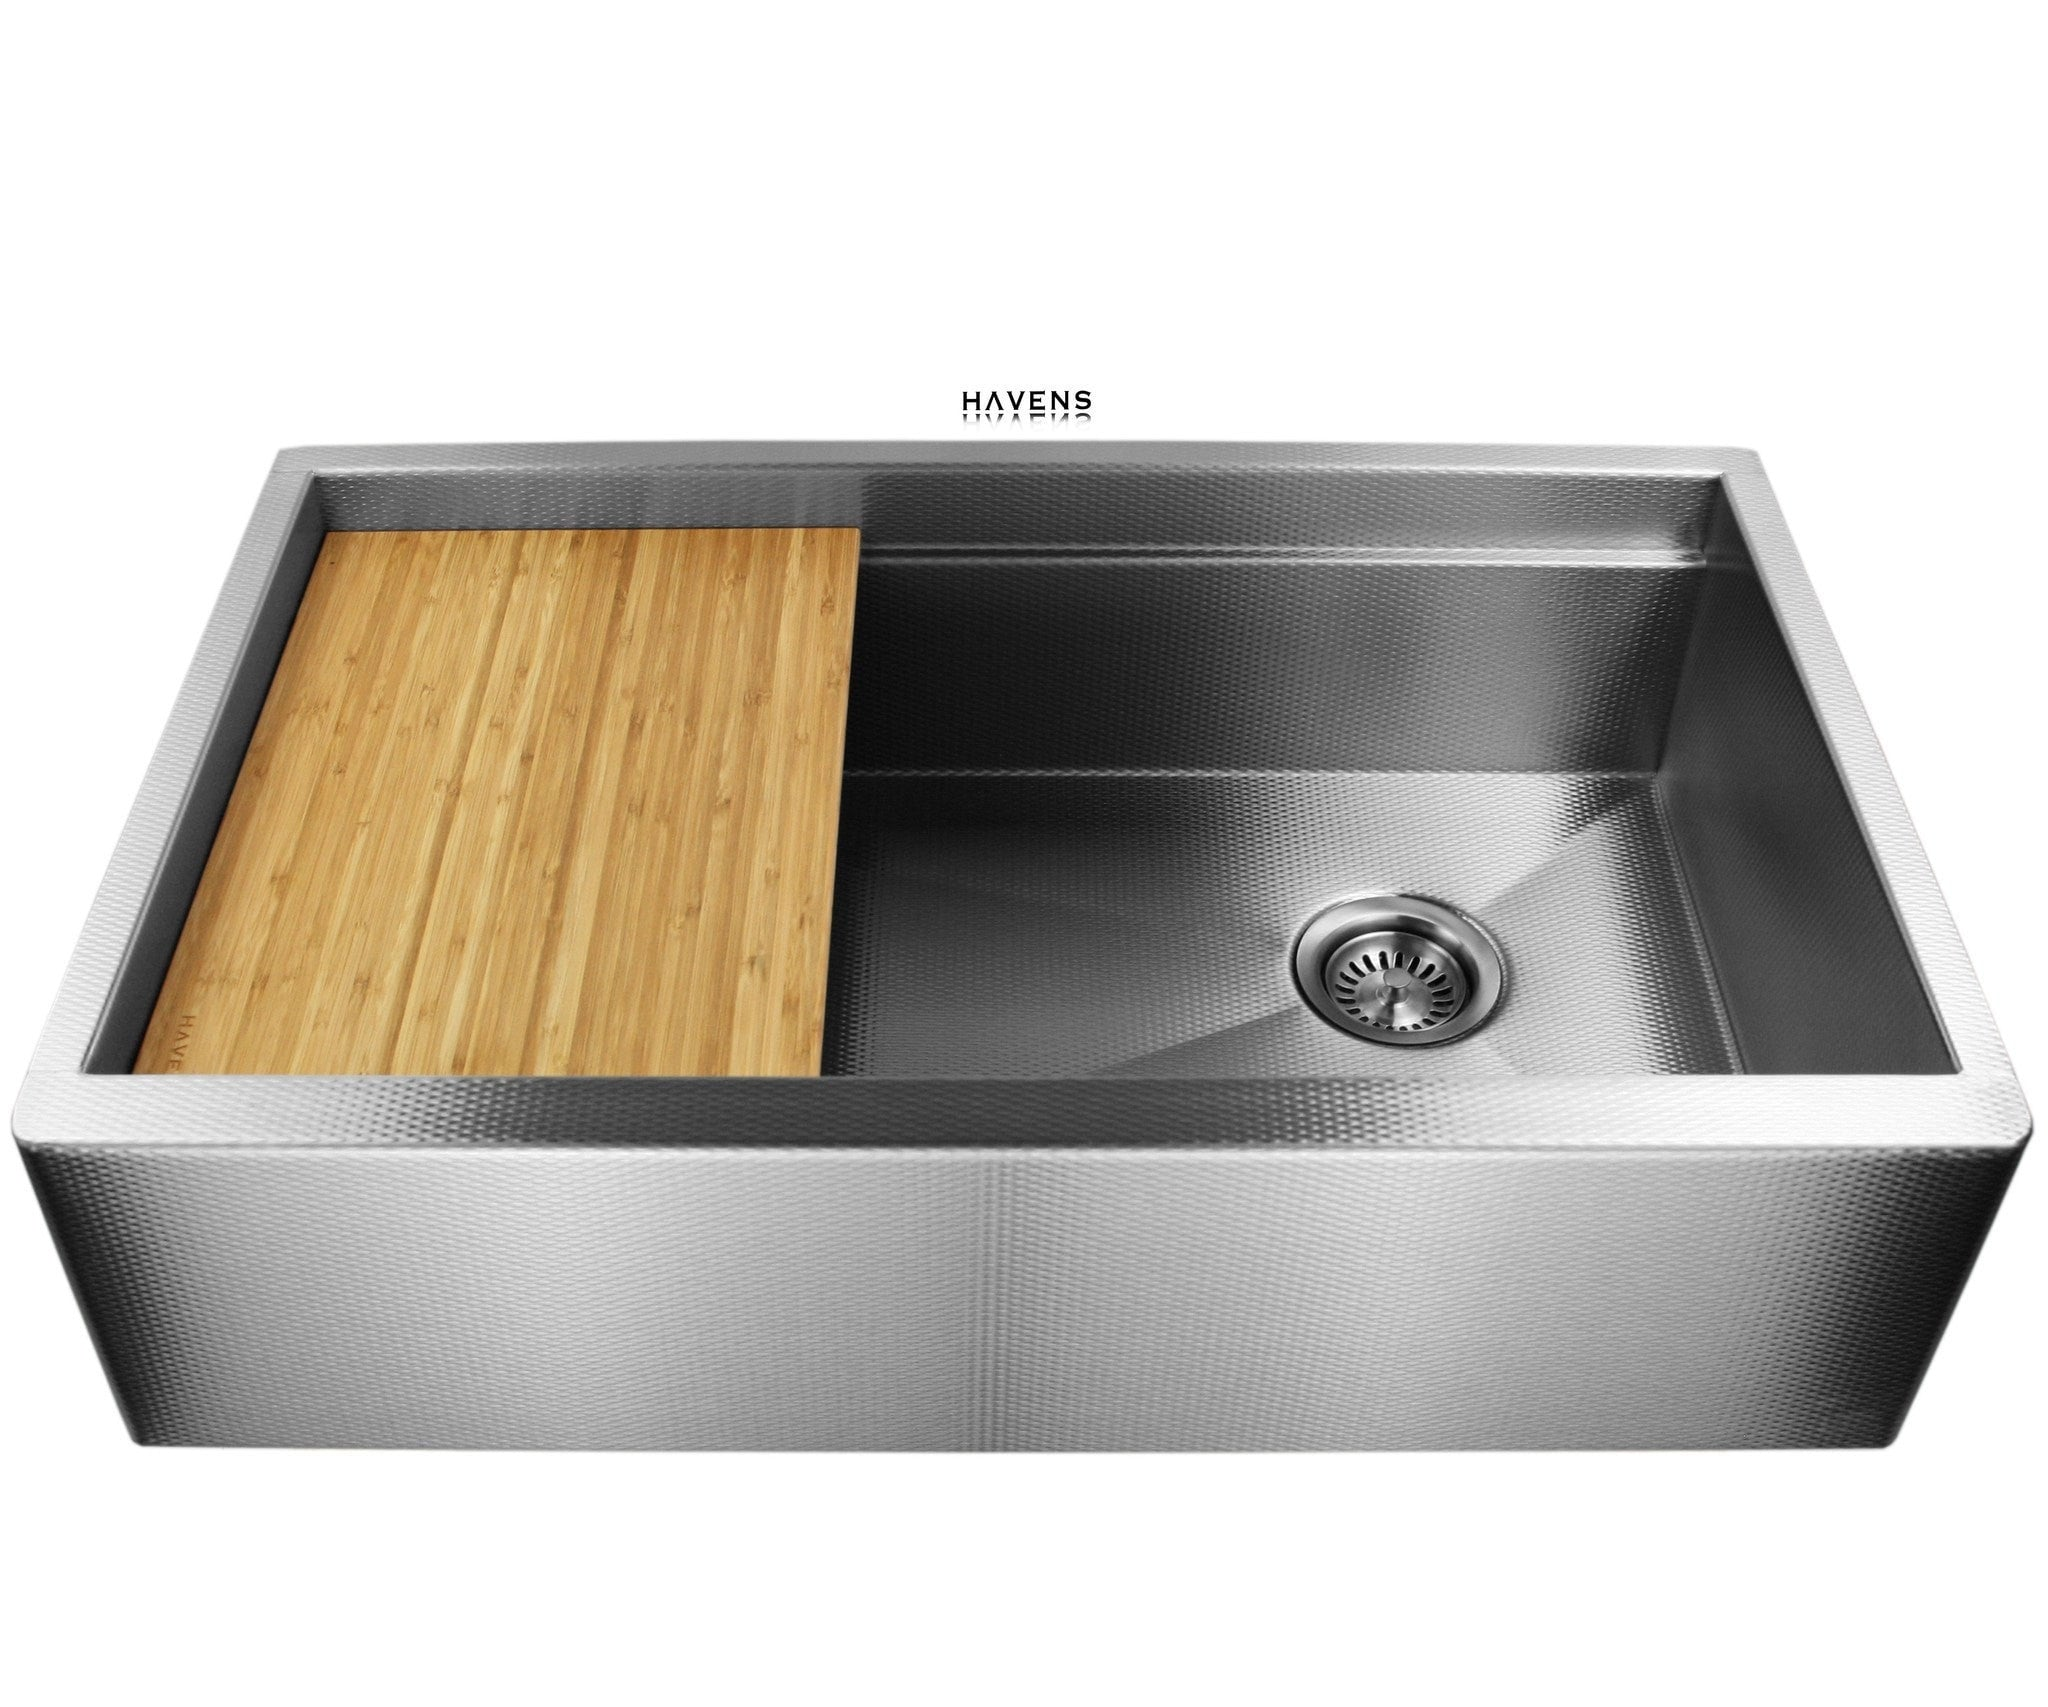 Legacy Stainless steel sink with Amber Wood cutting board